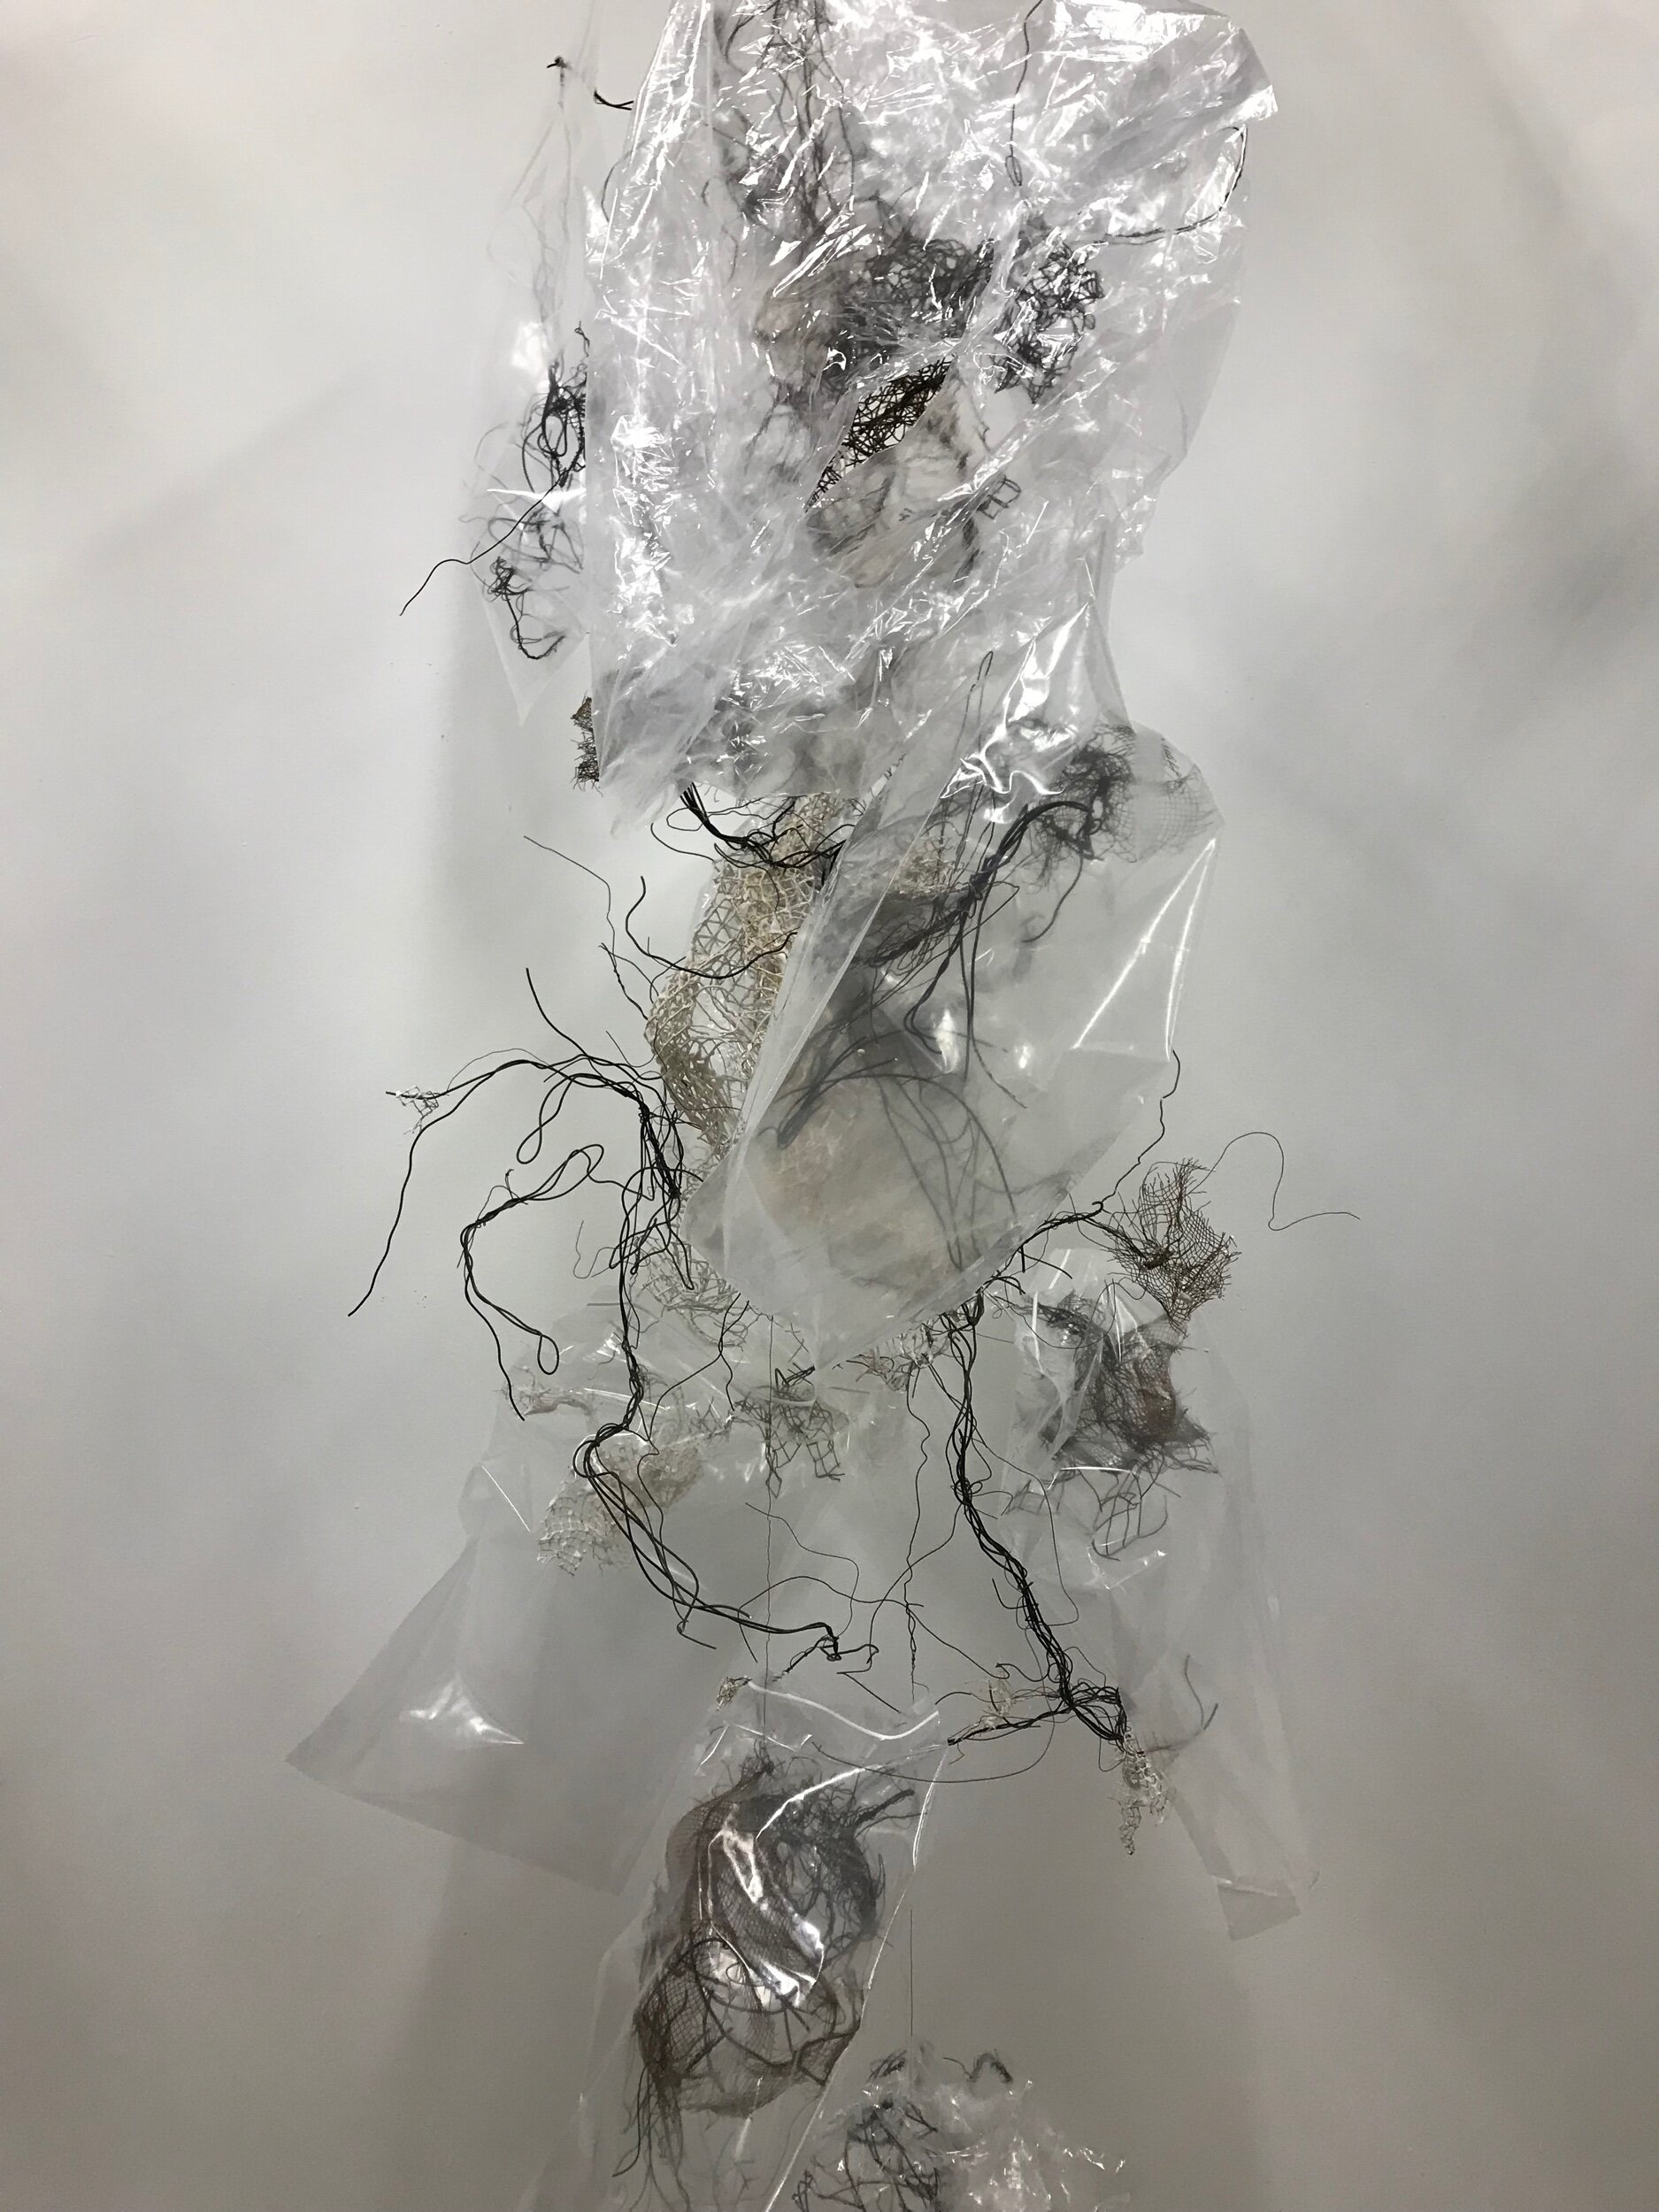 Each small element bagged separately making bouquet of bee cocoons